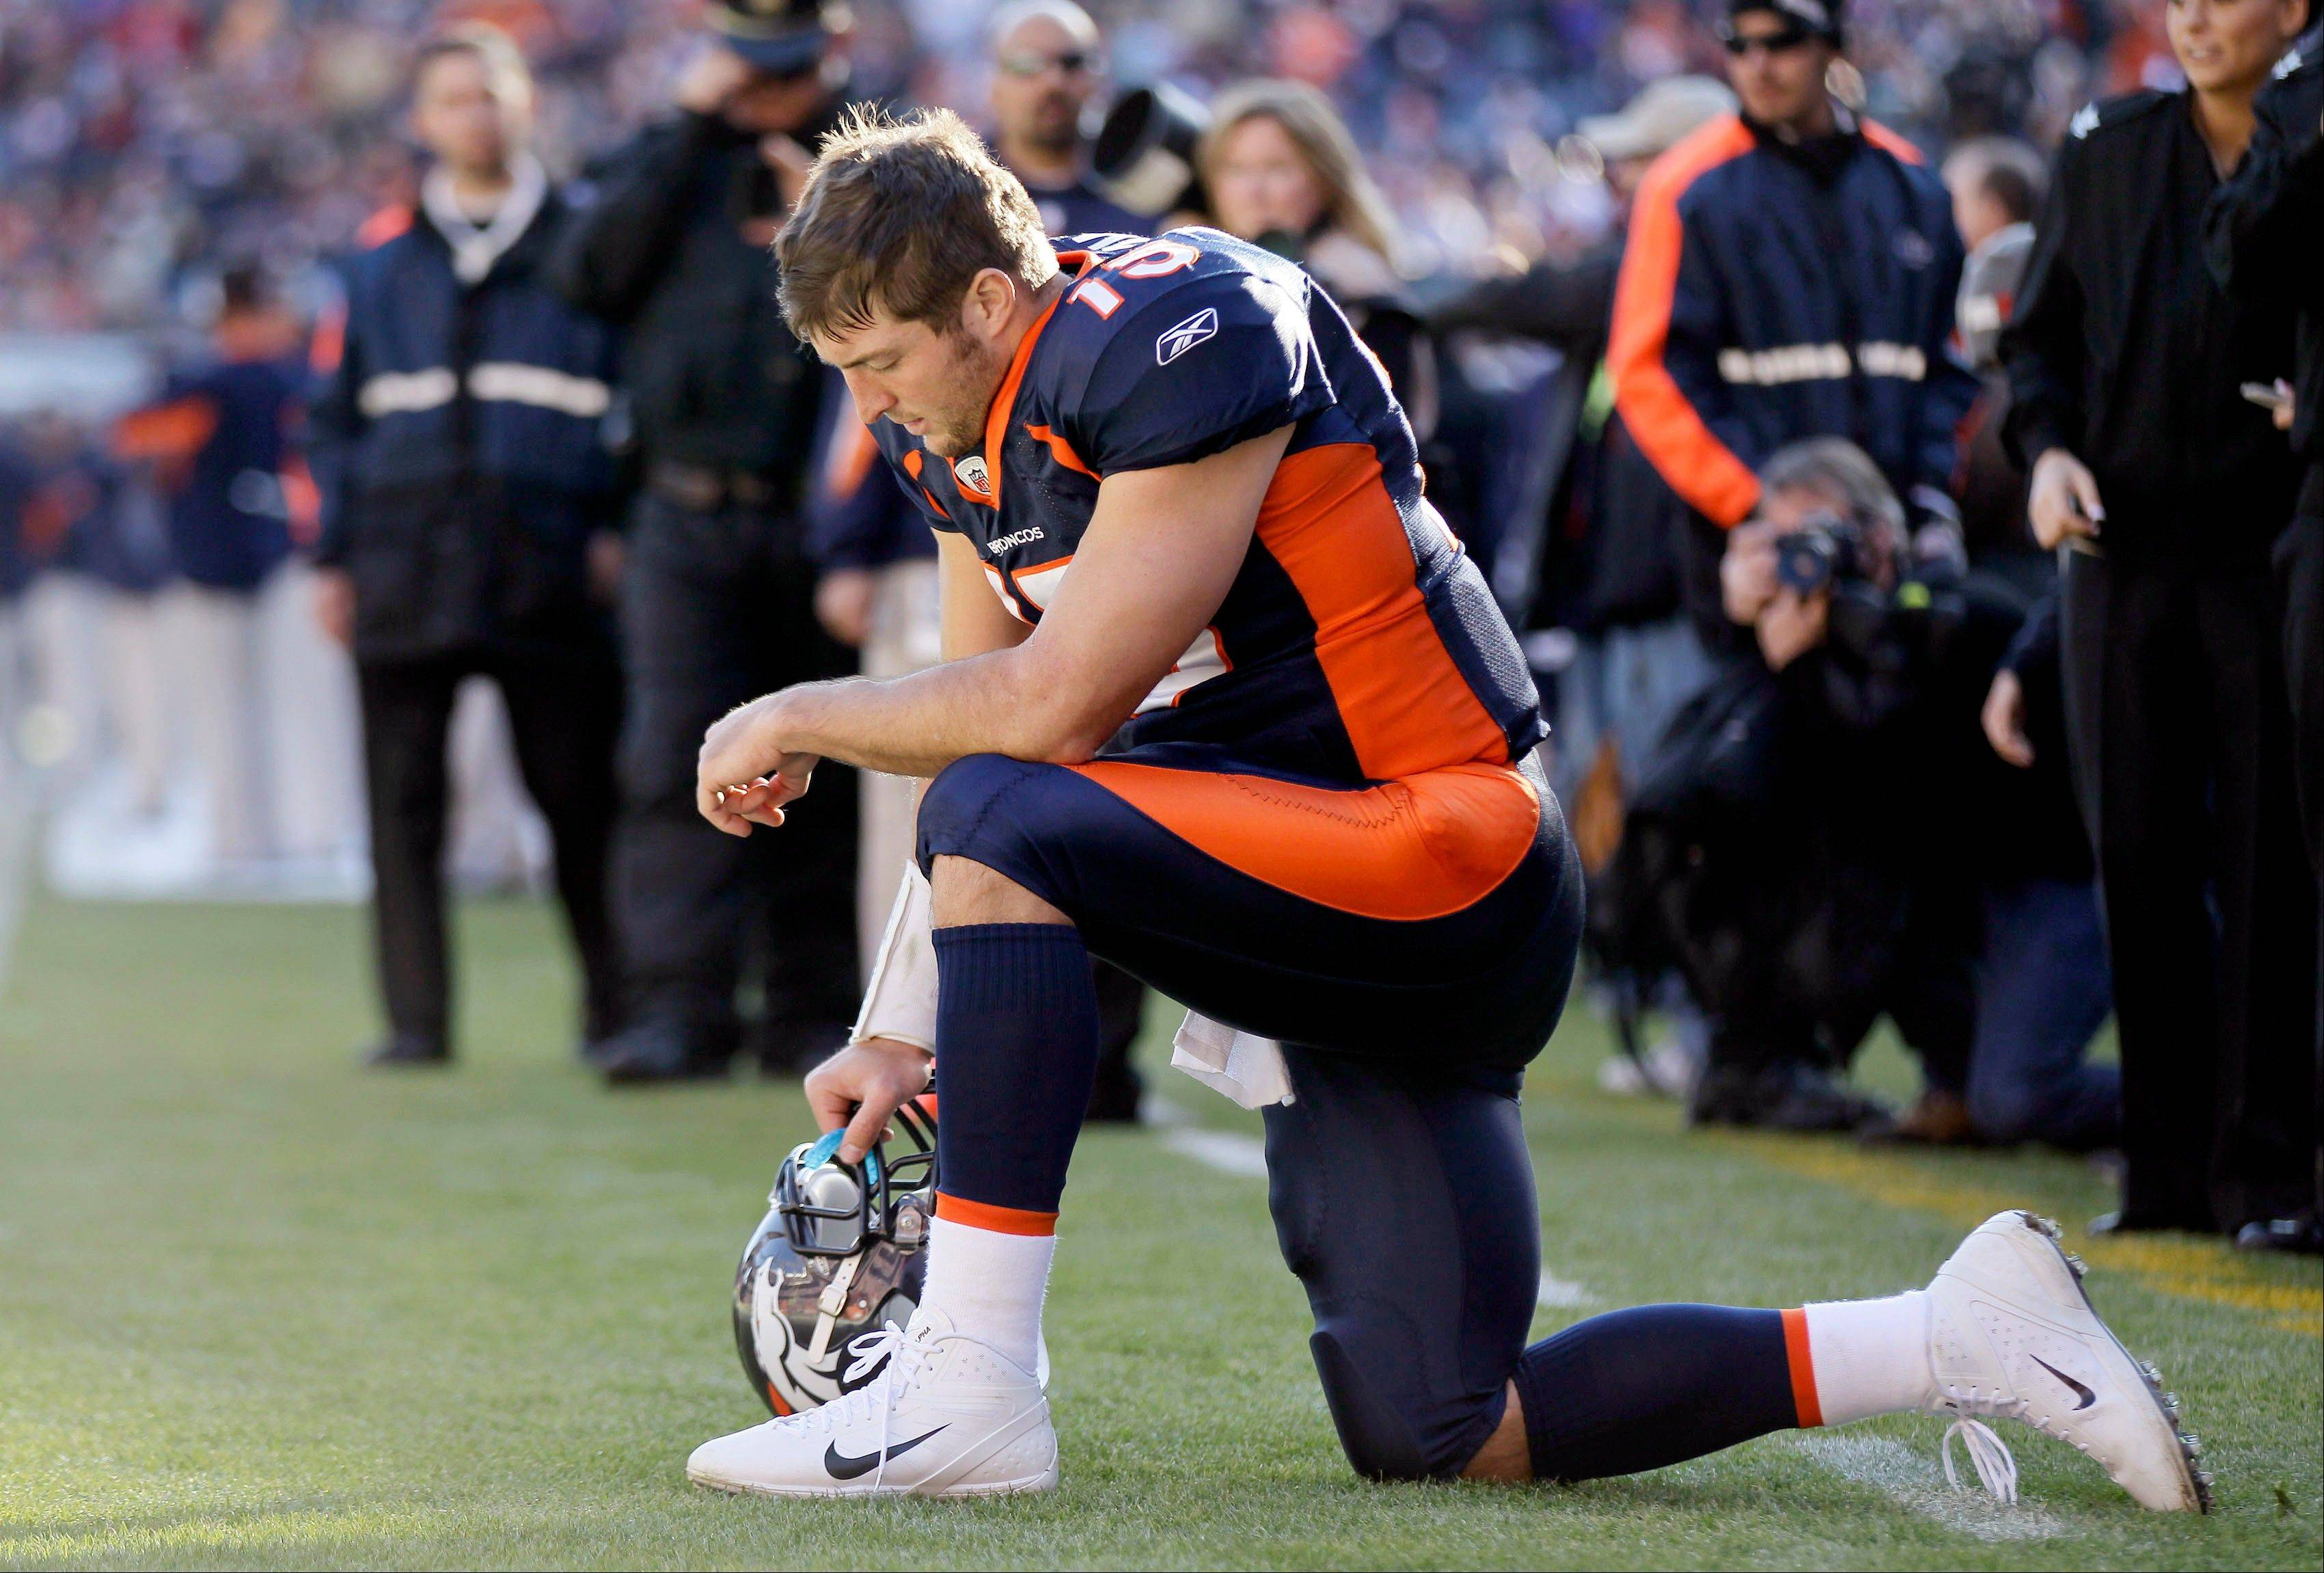 These public, on-field prayers of Denver Broncos quarterback Tim Tebow have made him one of our nation's most-admired and most-mocked athletes.